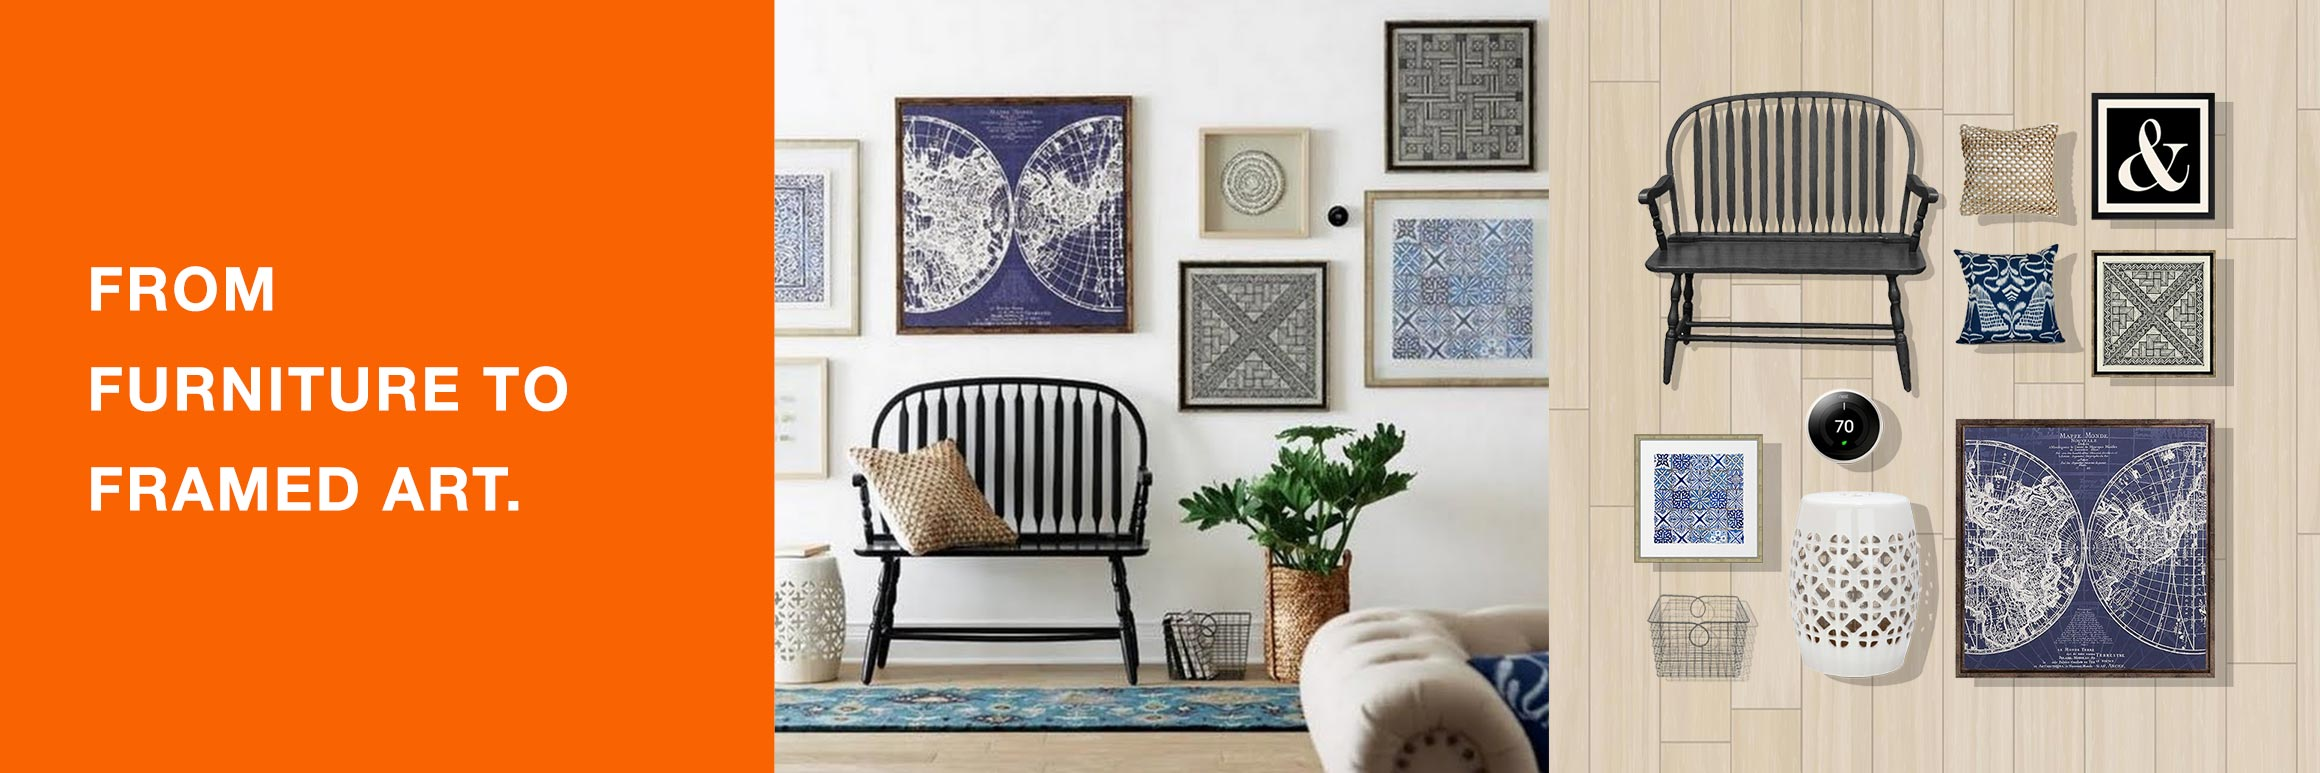 From furniture to framed art.